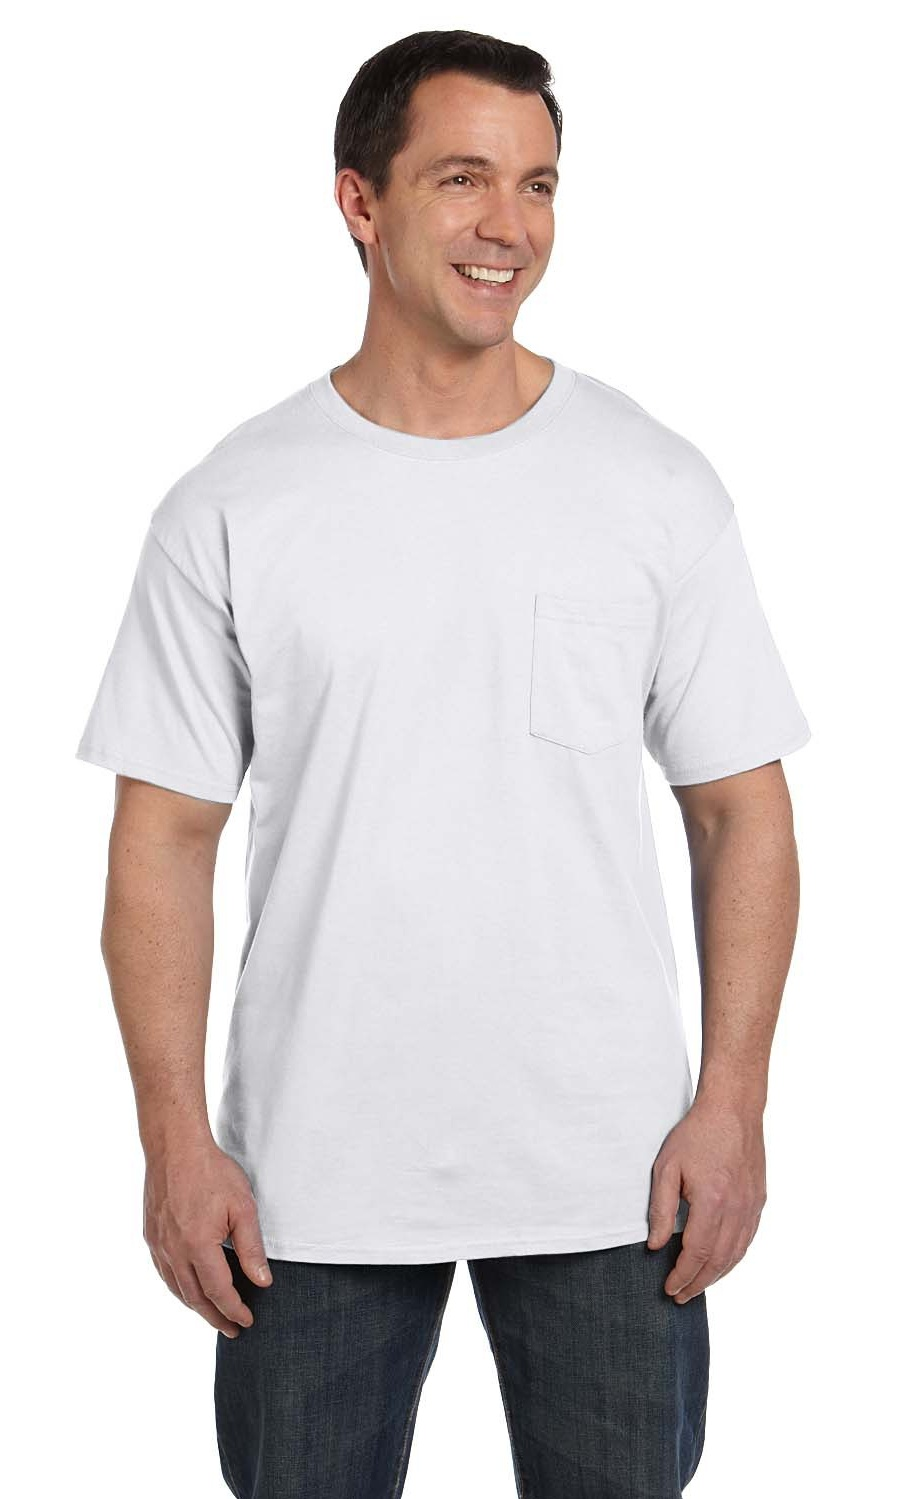 f011506c Hanes Beefy T Shirts Wholesale – EDGE Engineering and Consulting Limited